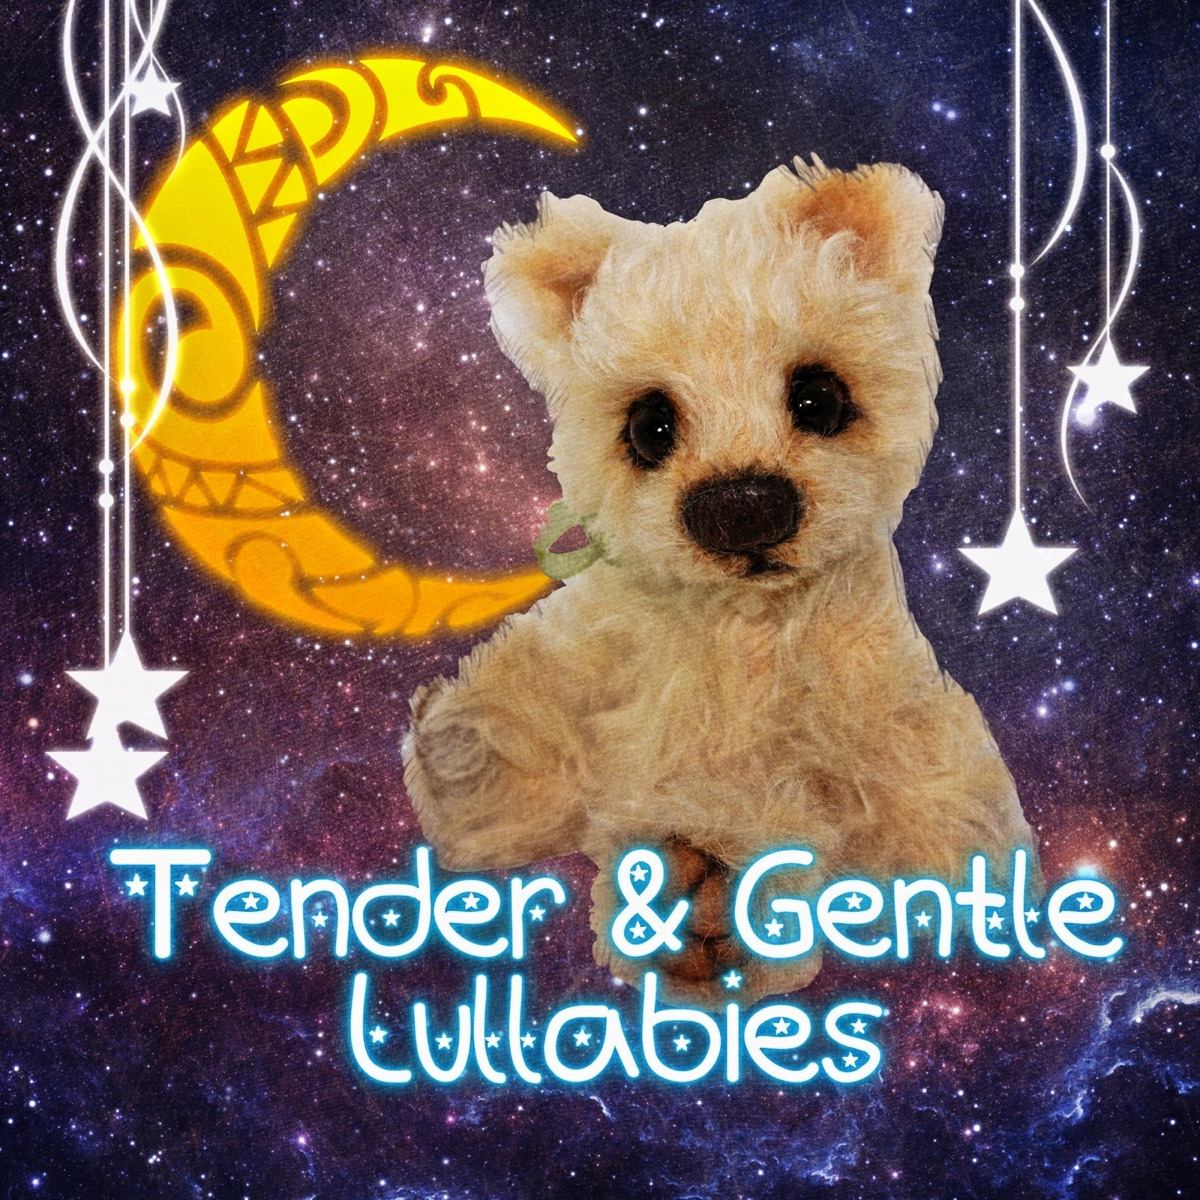 Tender & Gentle Lullabies – Baby Sleep Lullaby, Calm Night